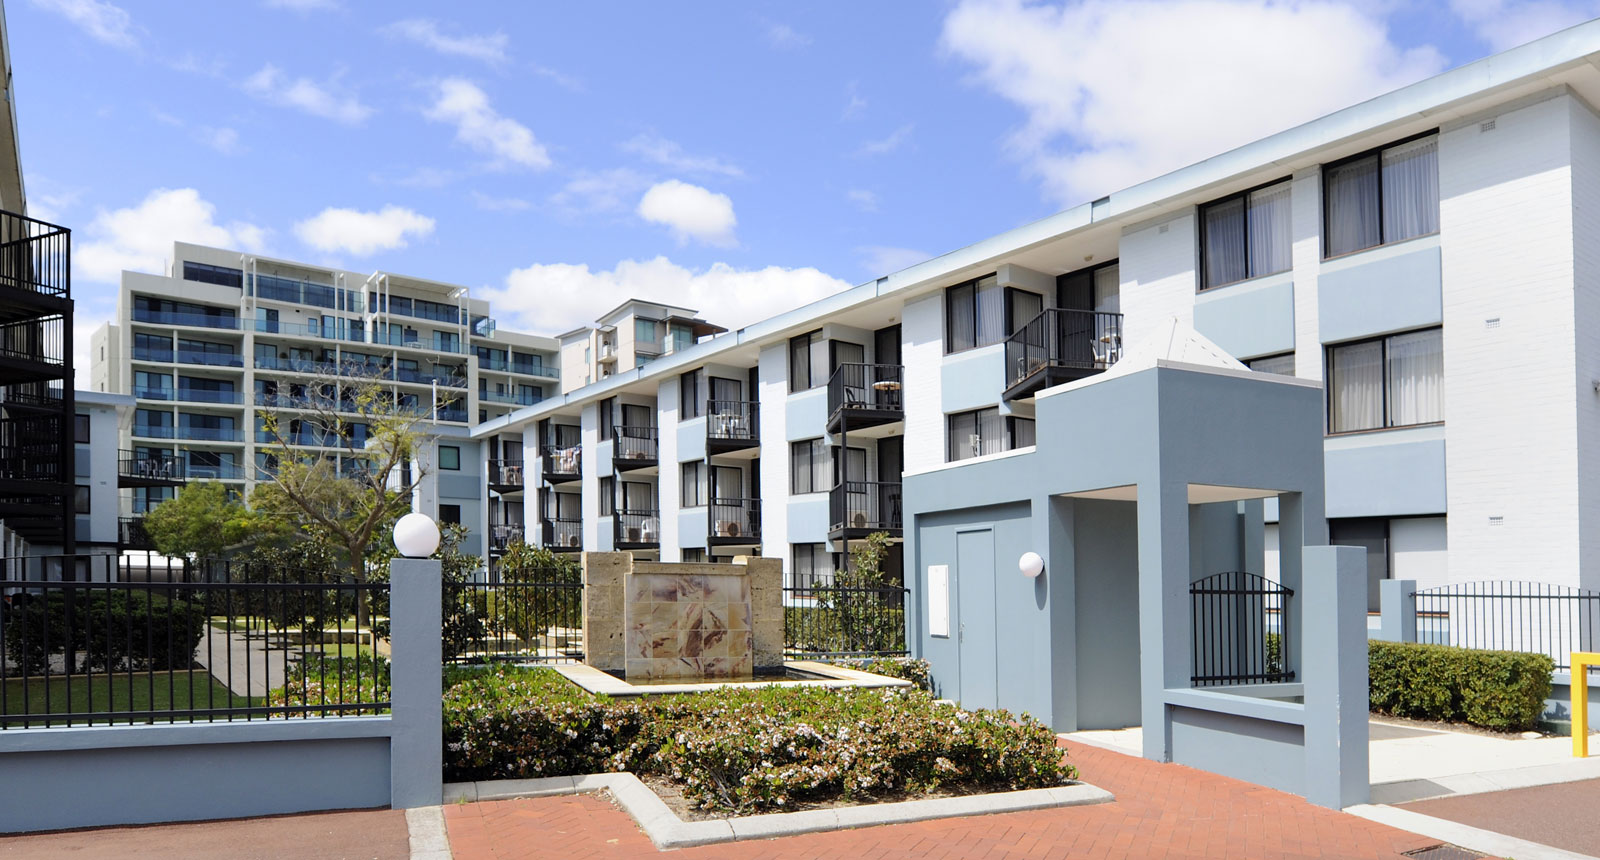 Why serviced apartment is better than residential hotel in Australia